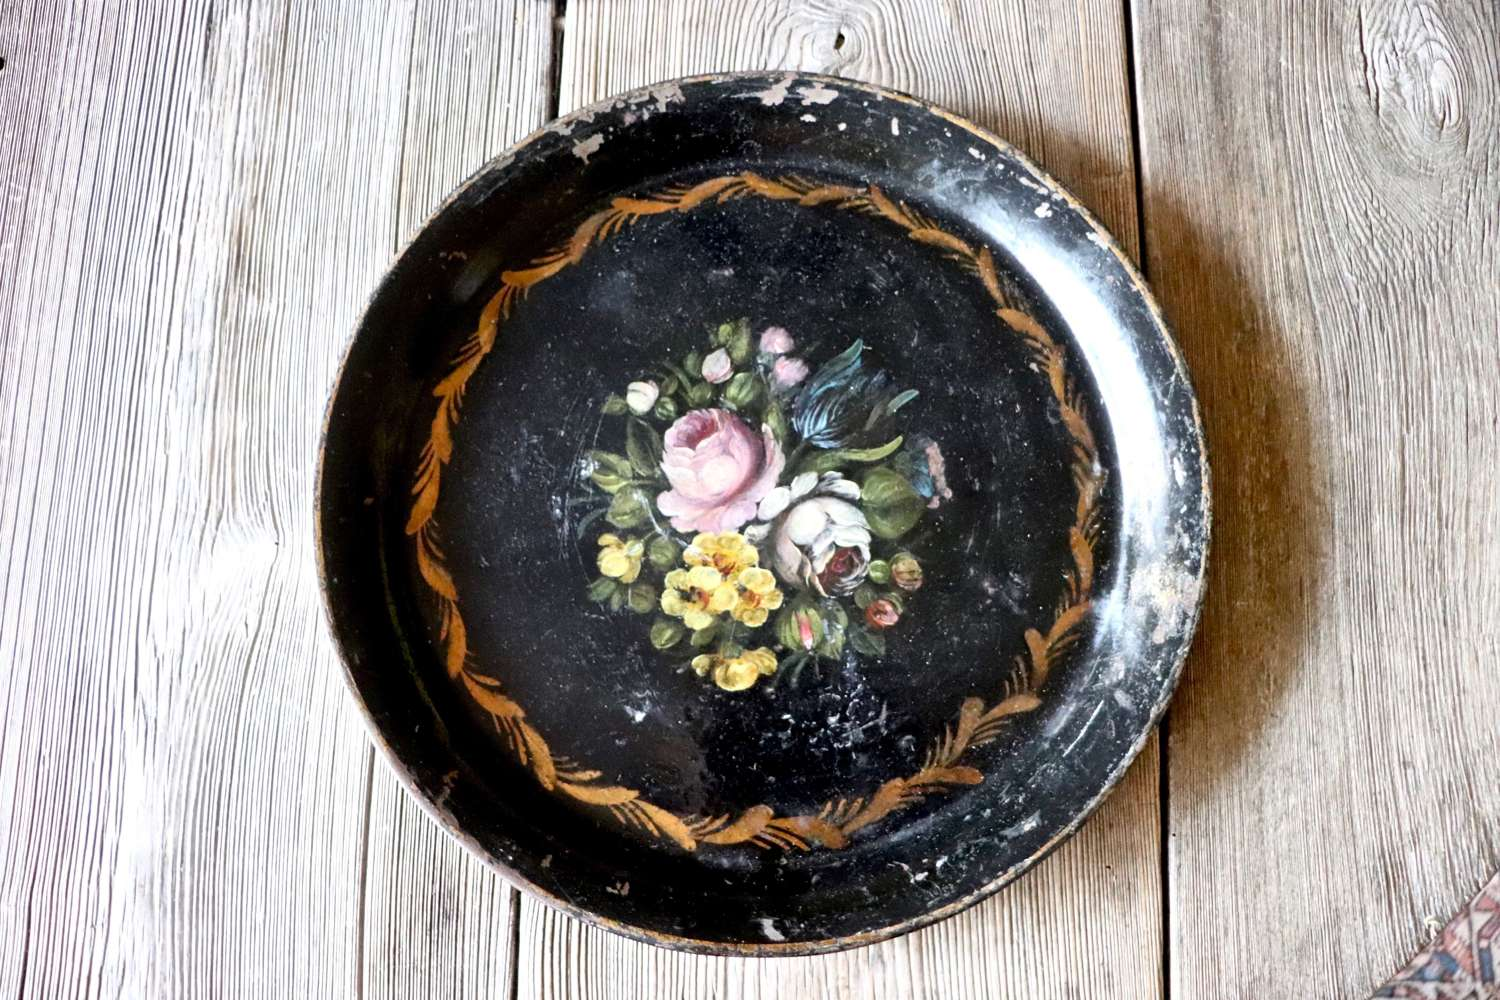 Early 20th century toleware tray